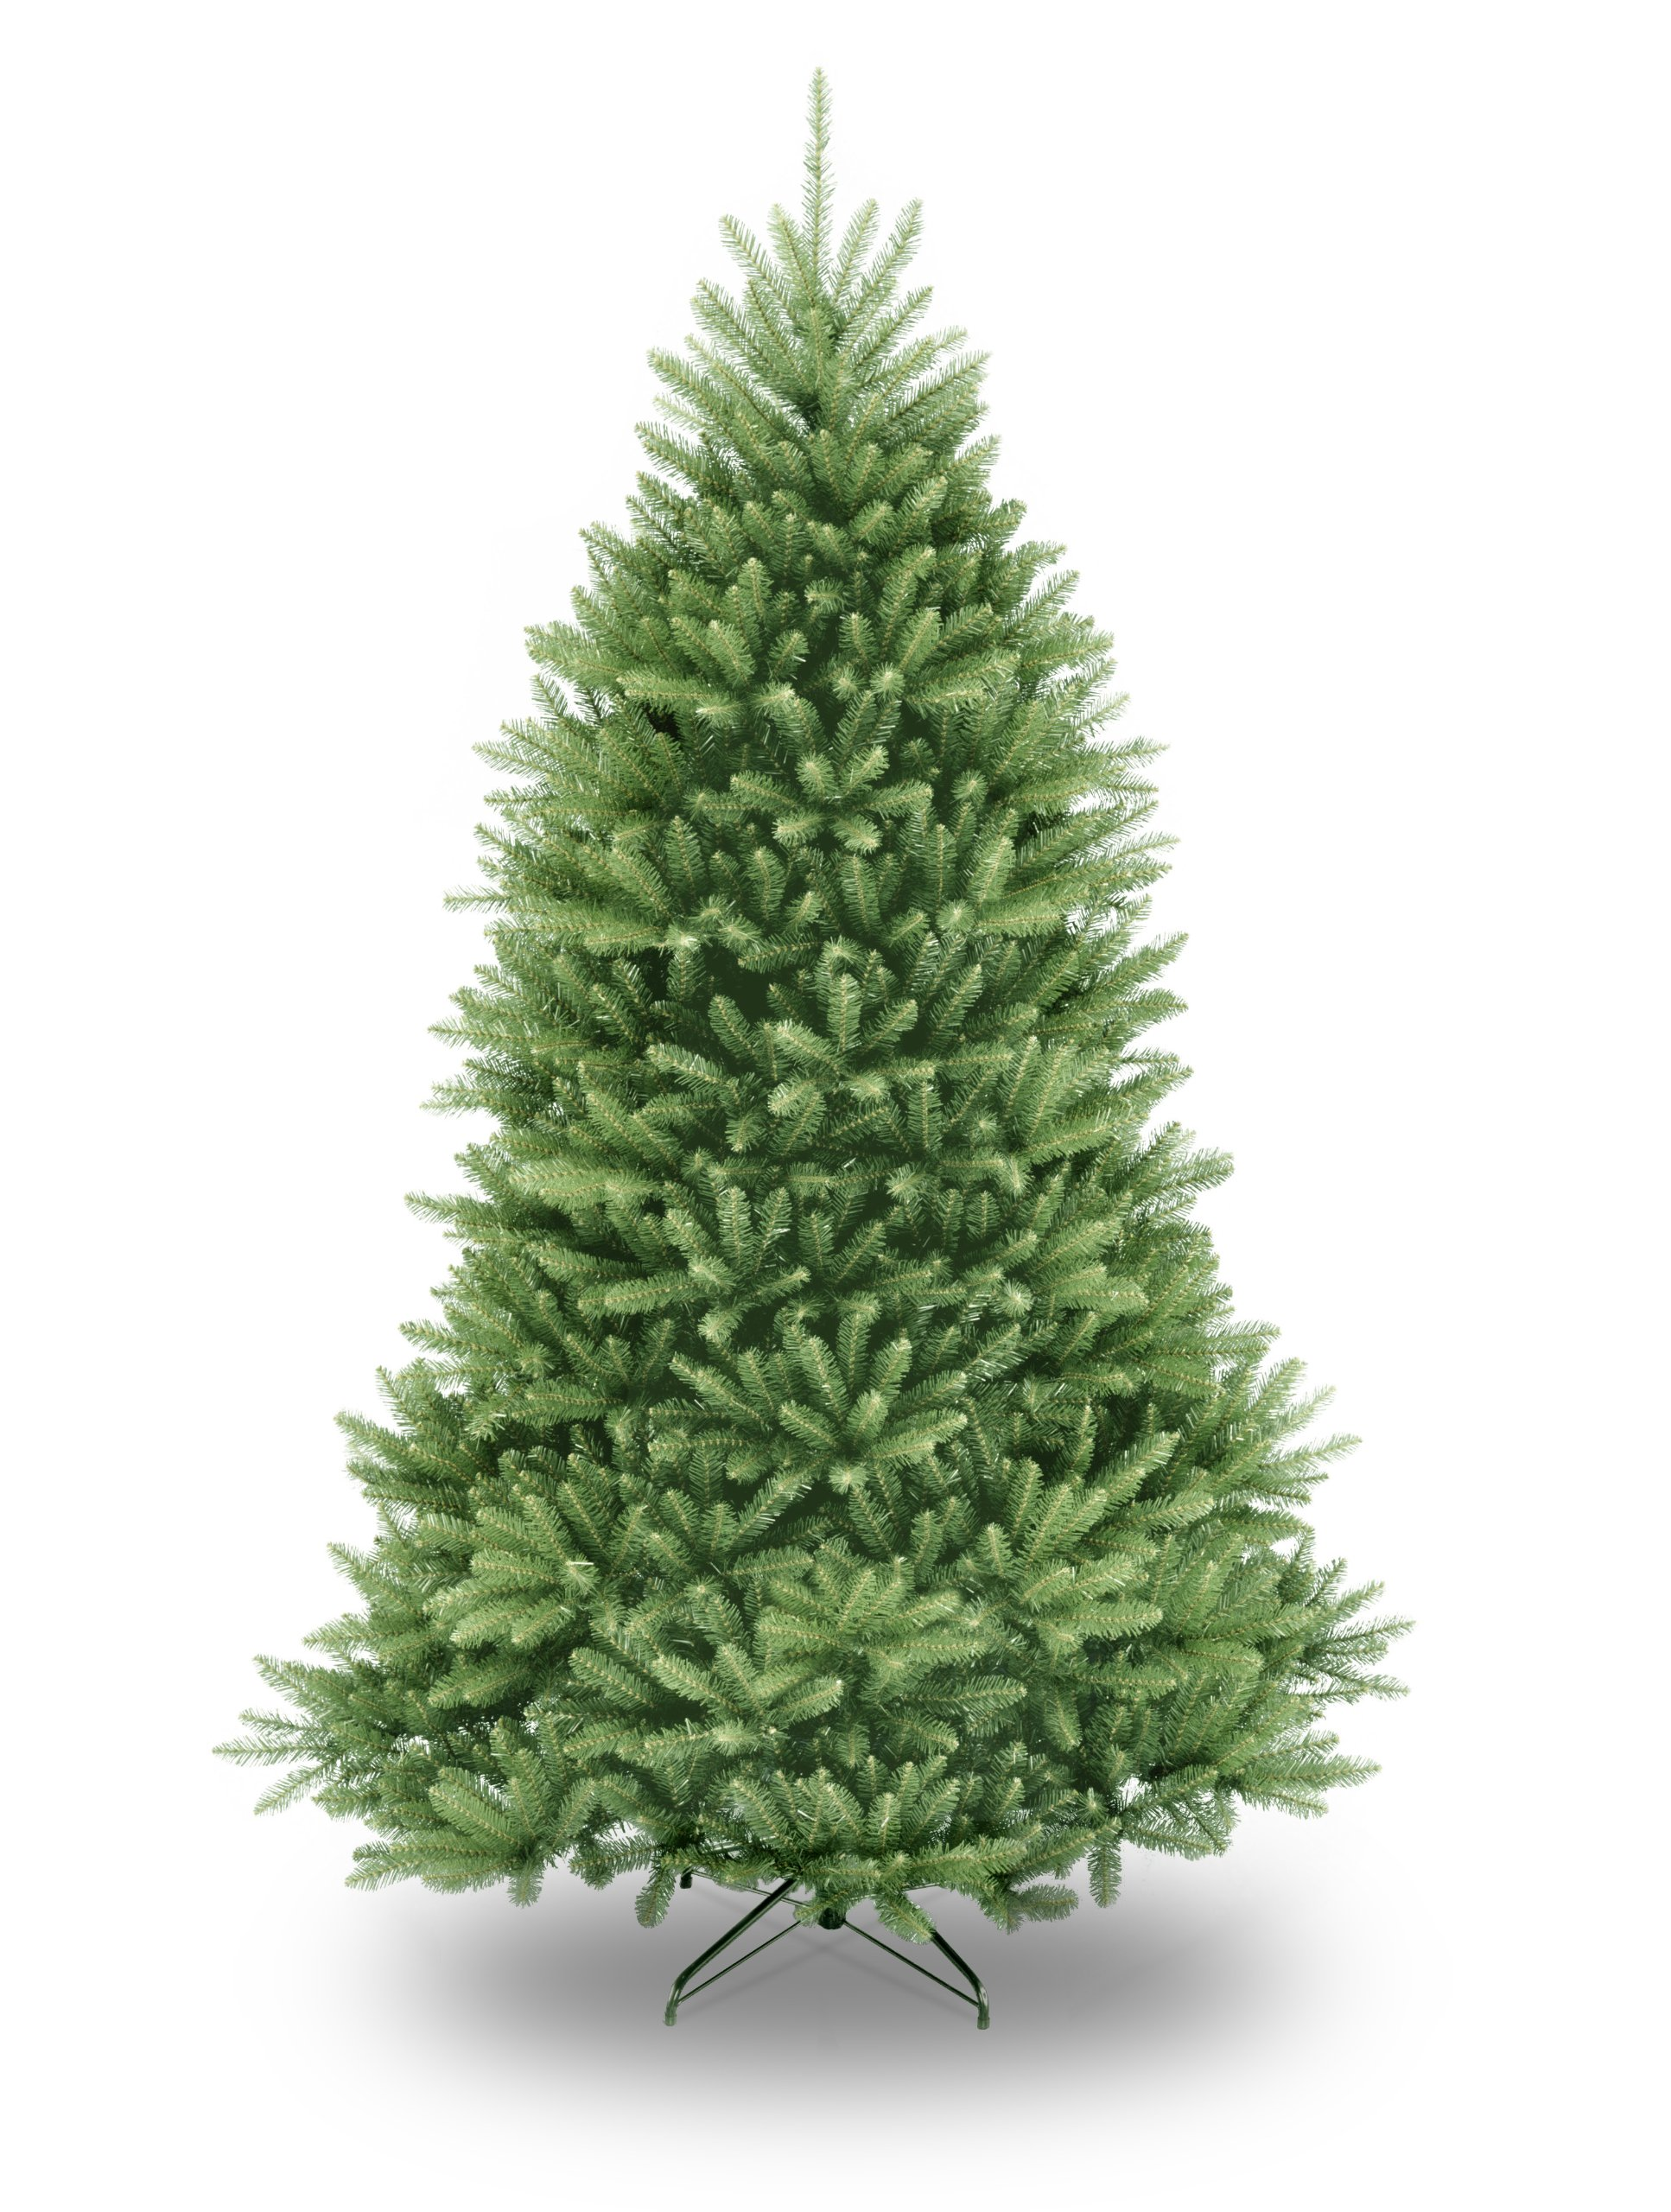 National Tree 7.5 Foot Dunhill Fir Christmas Tree, Hinged (DUH-75) by National Tree Company (Image #1)